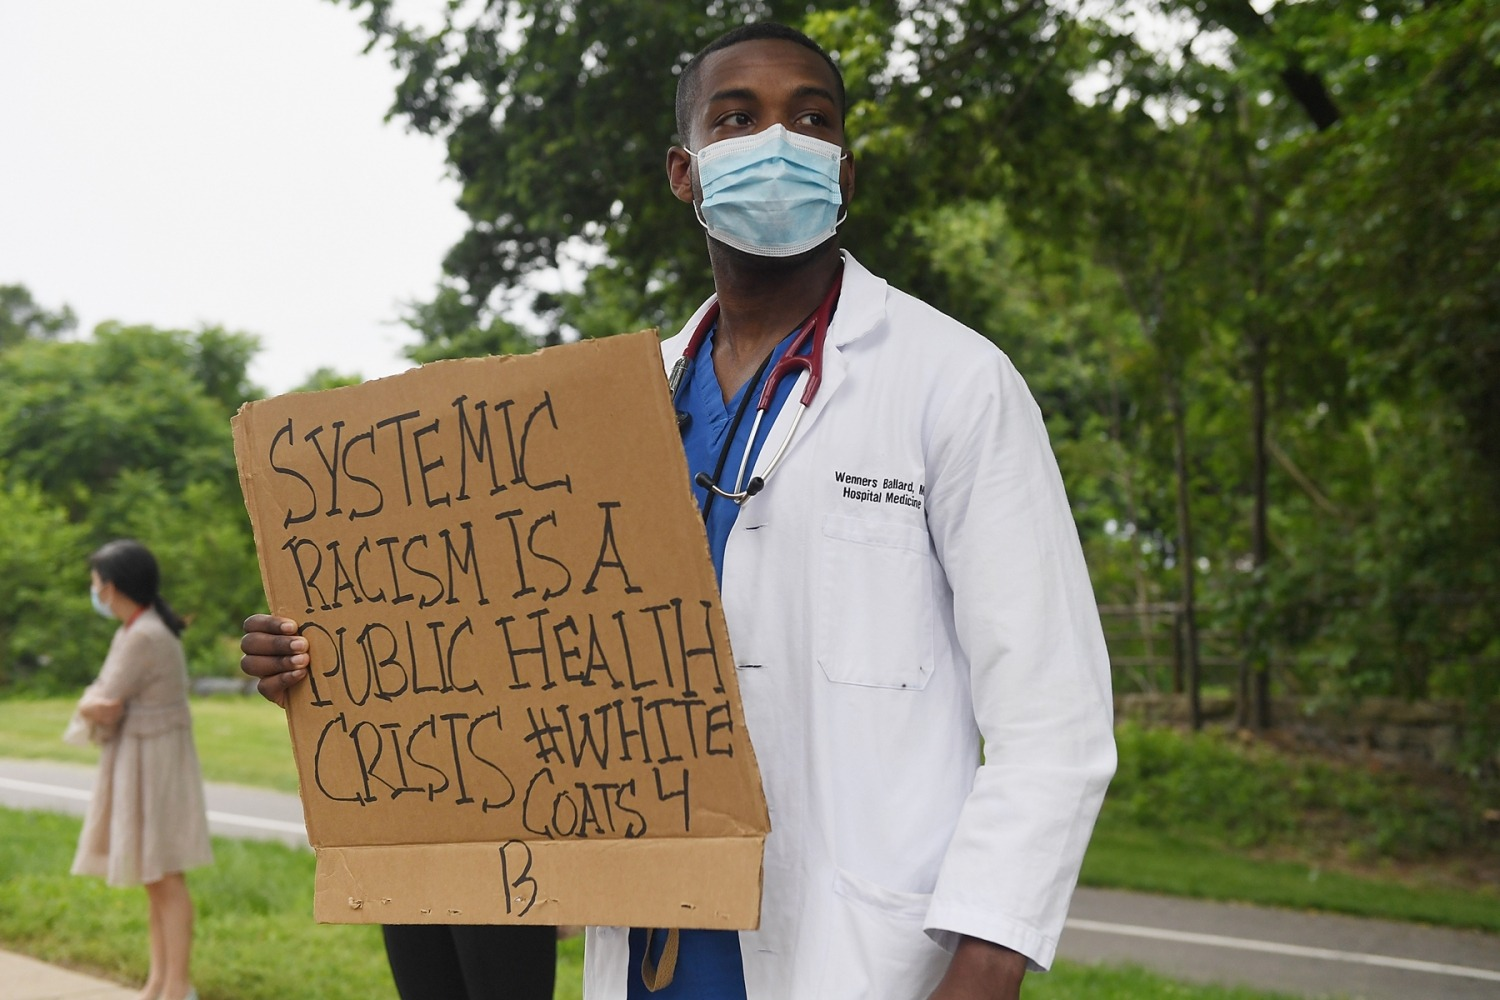 Several hundred doctors, nurses and medical professionals came together to protest against police brutality and the death of George Floyd at Barnes-Jewish Hospital on June 5, 2020 in St Louis, Missouri.